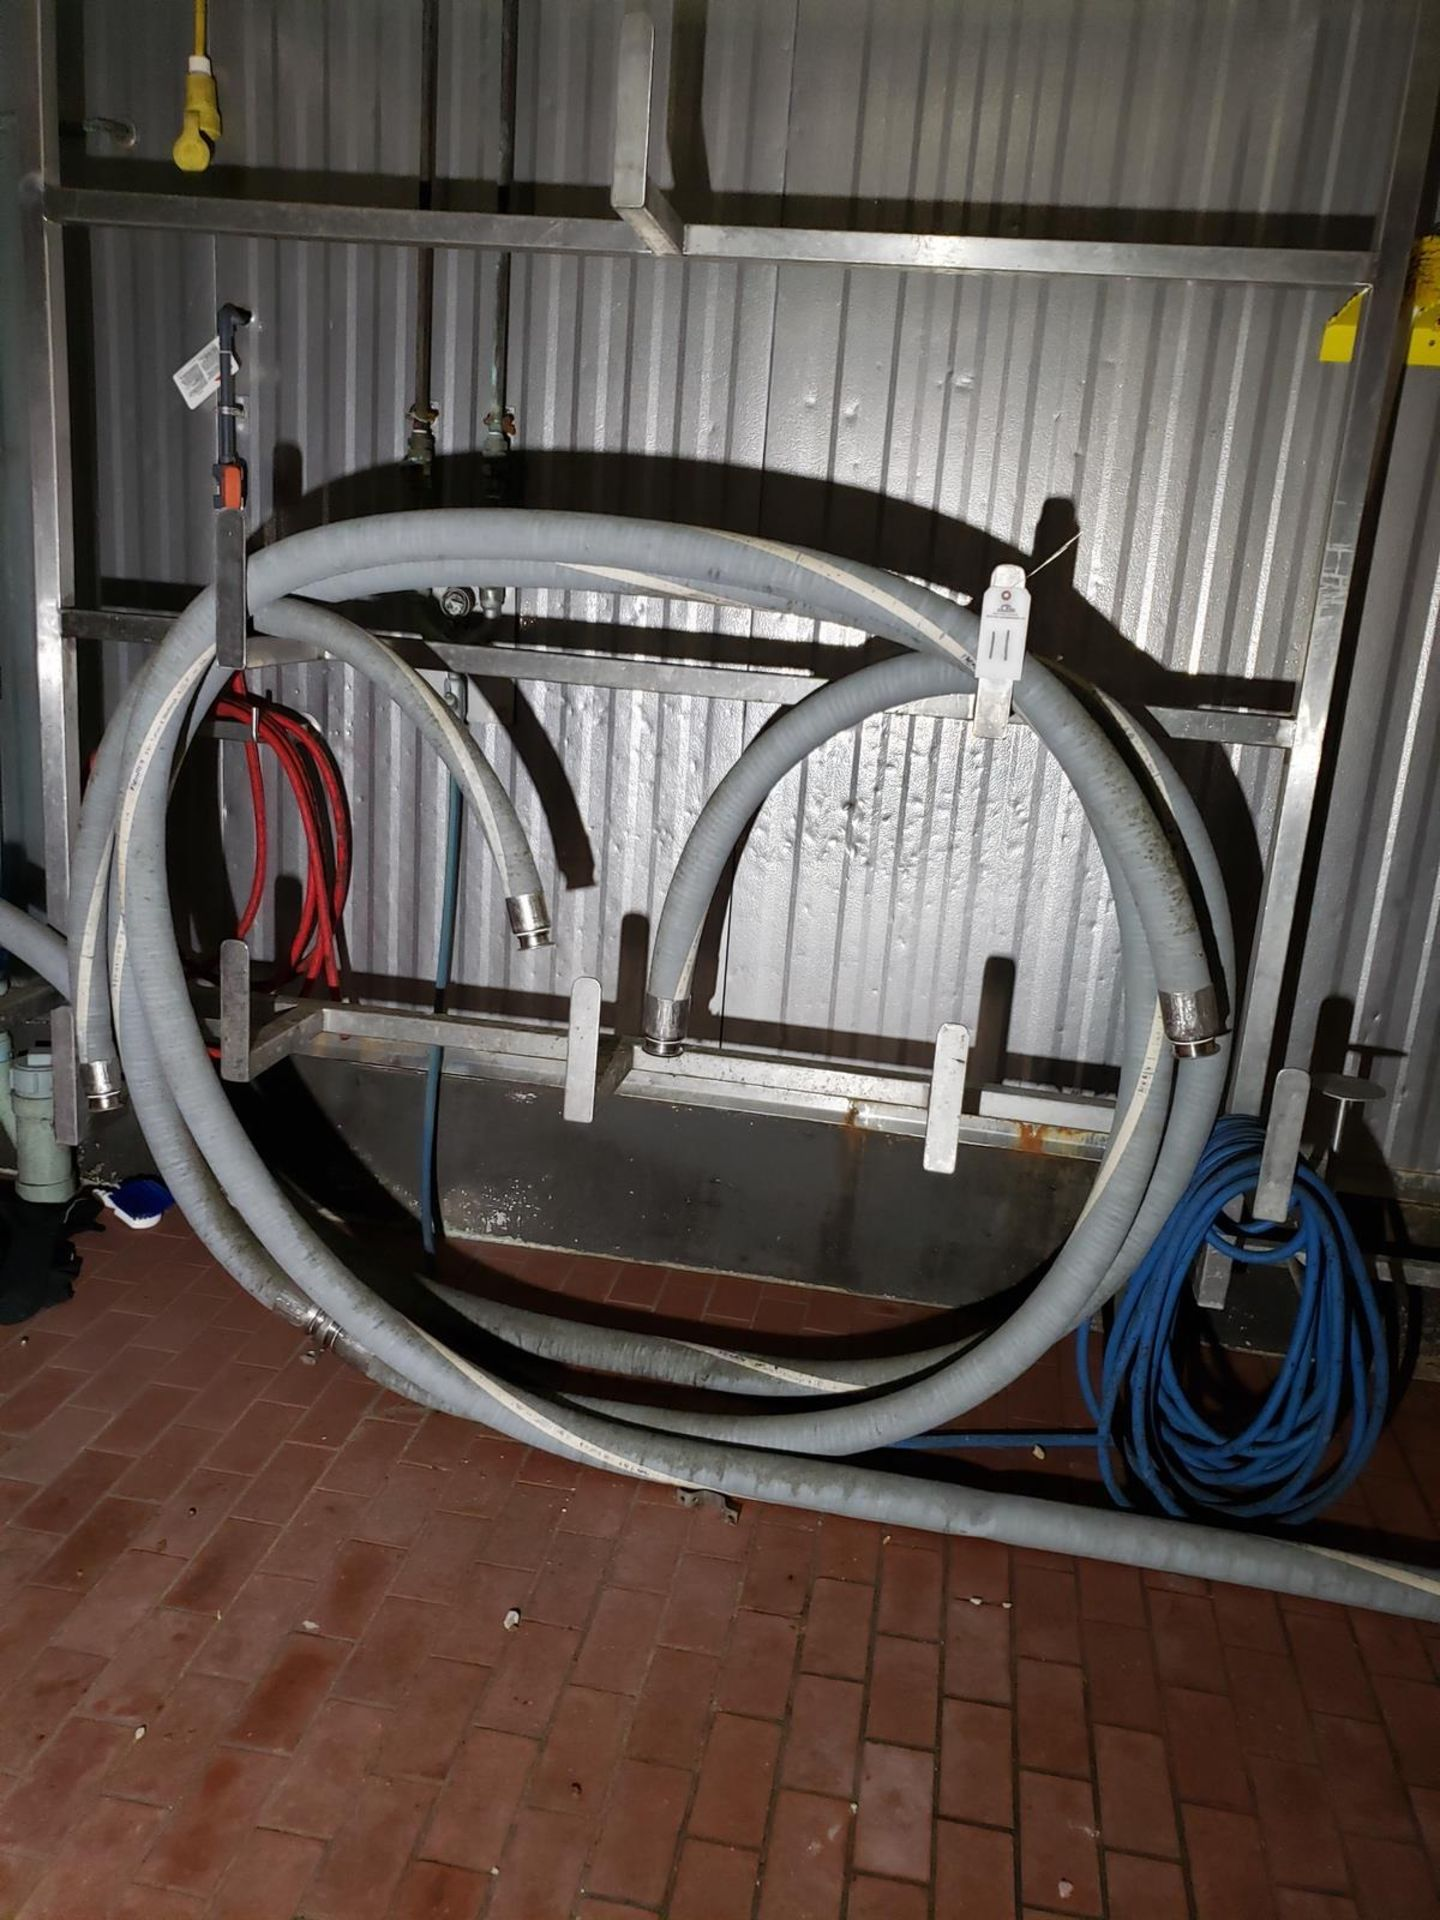 "Lot 11 - Lot of 2"" Sanitary Hoses"